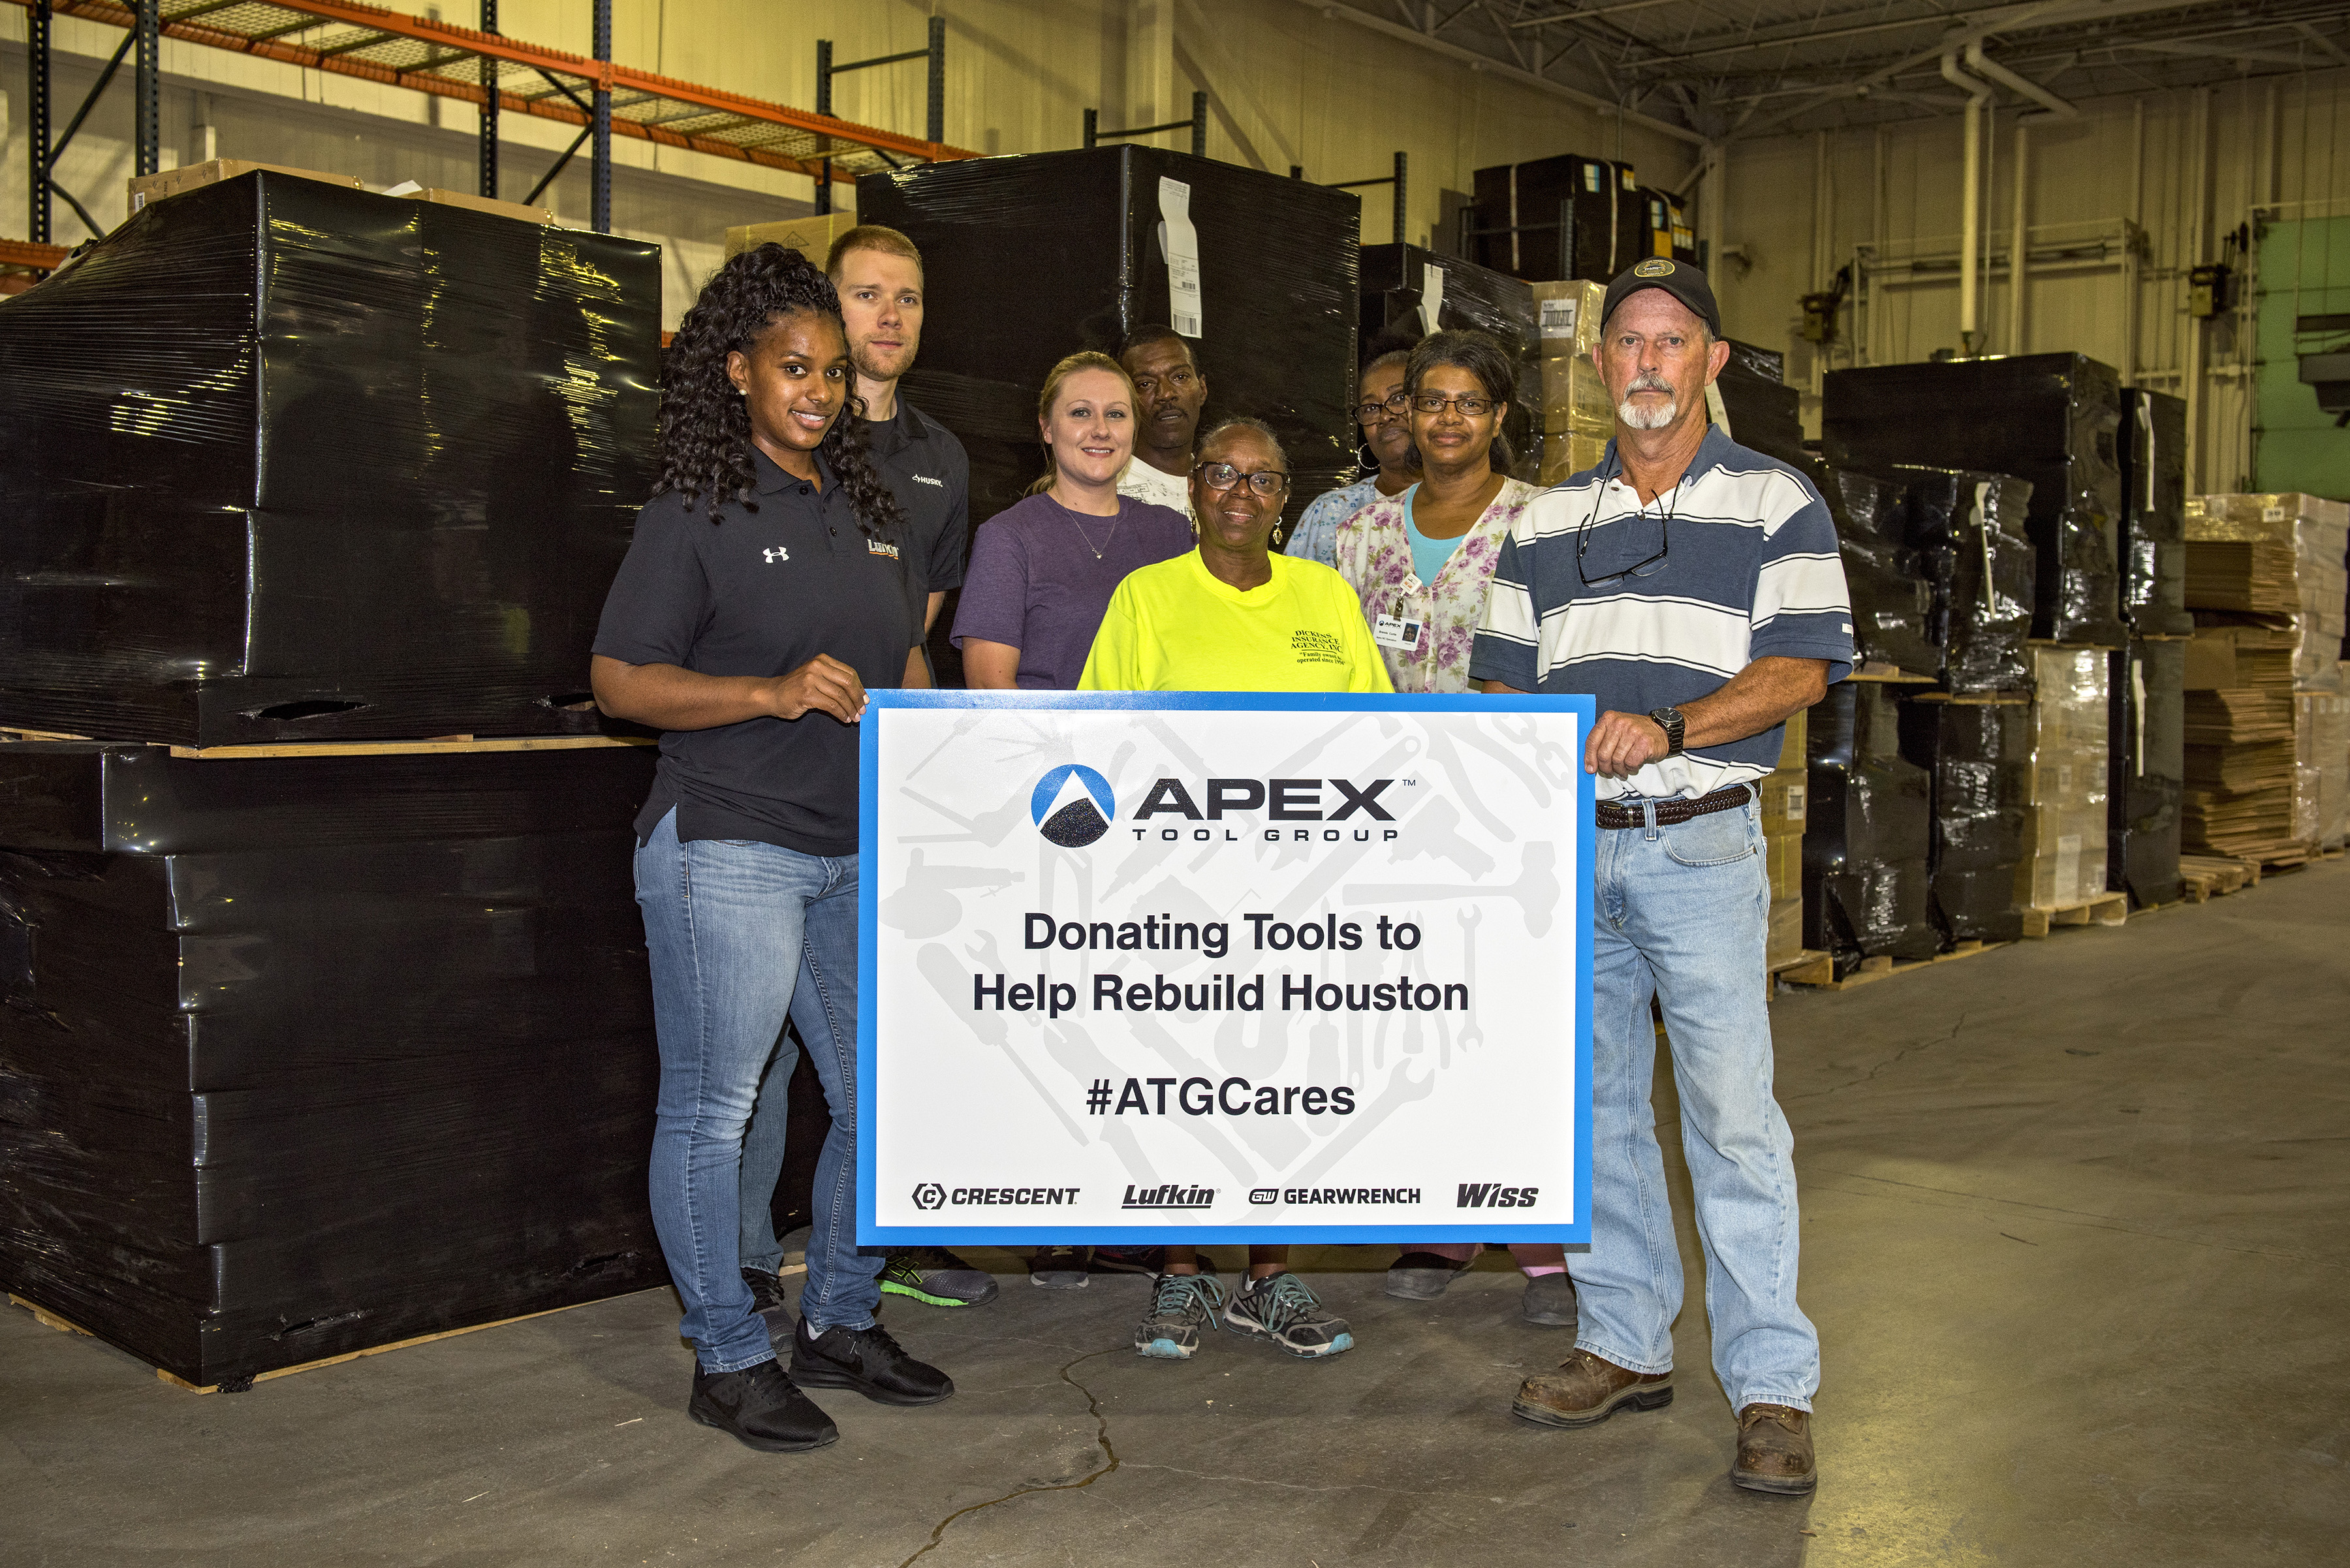 Apex Tool Group Offers Tools and Warehouse Space to Help Hurricane Victims